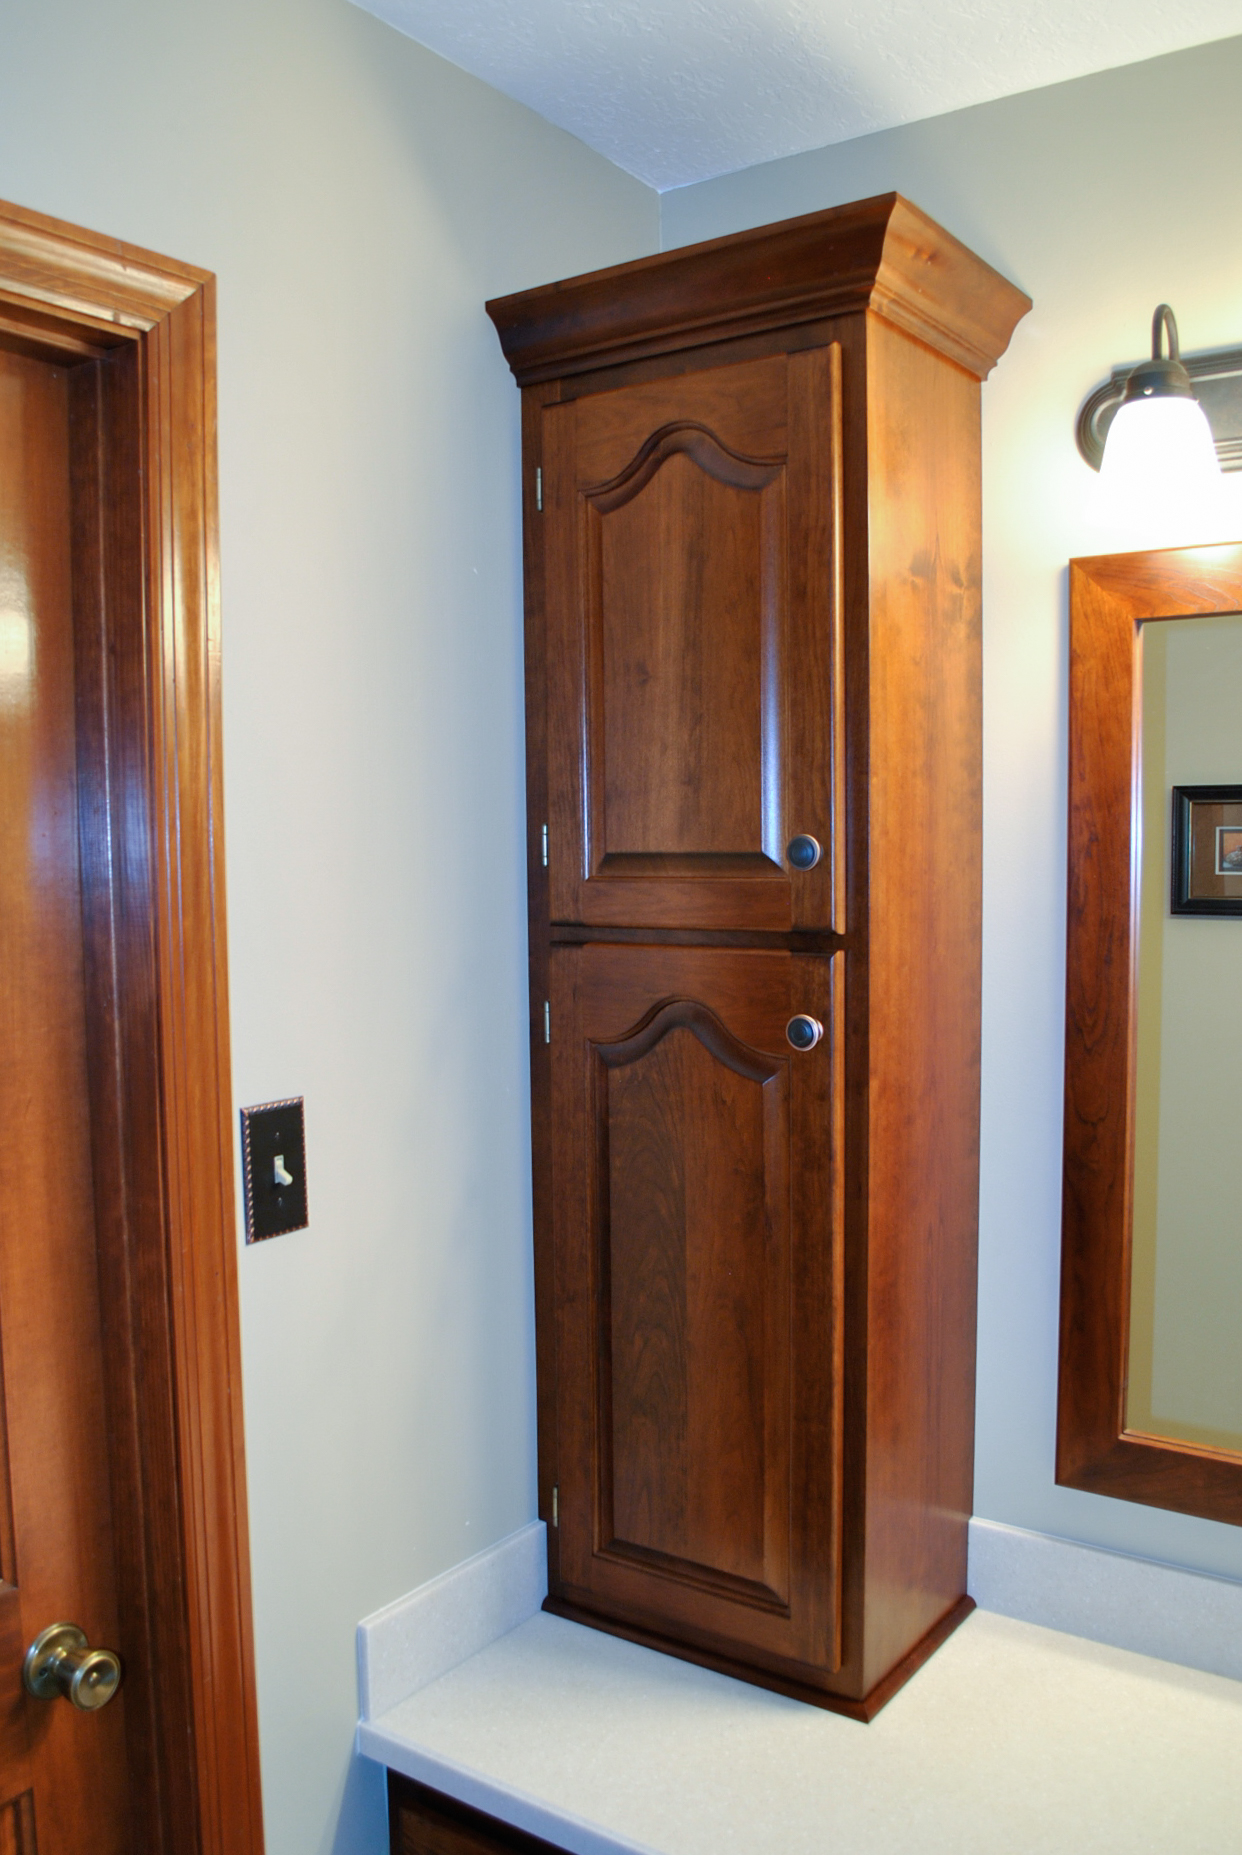 Solid cherry raised panel doors and cabinet custom made to match the existing style.